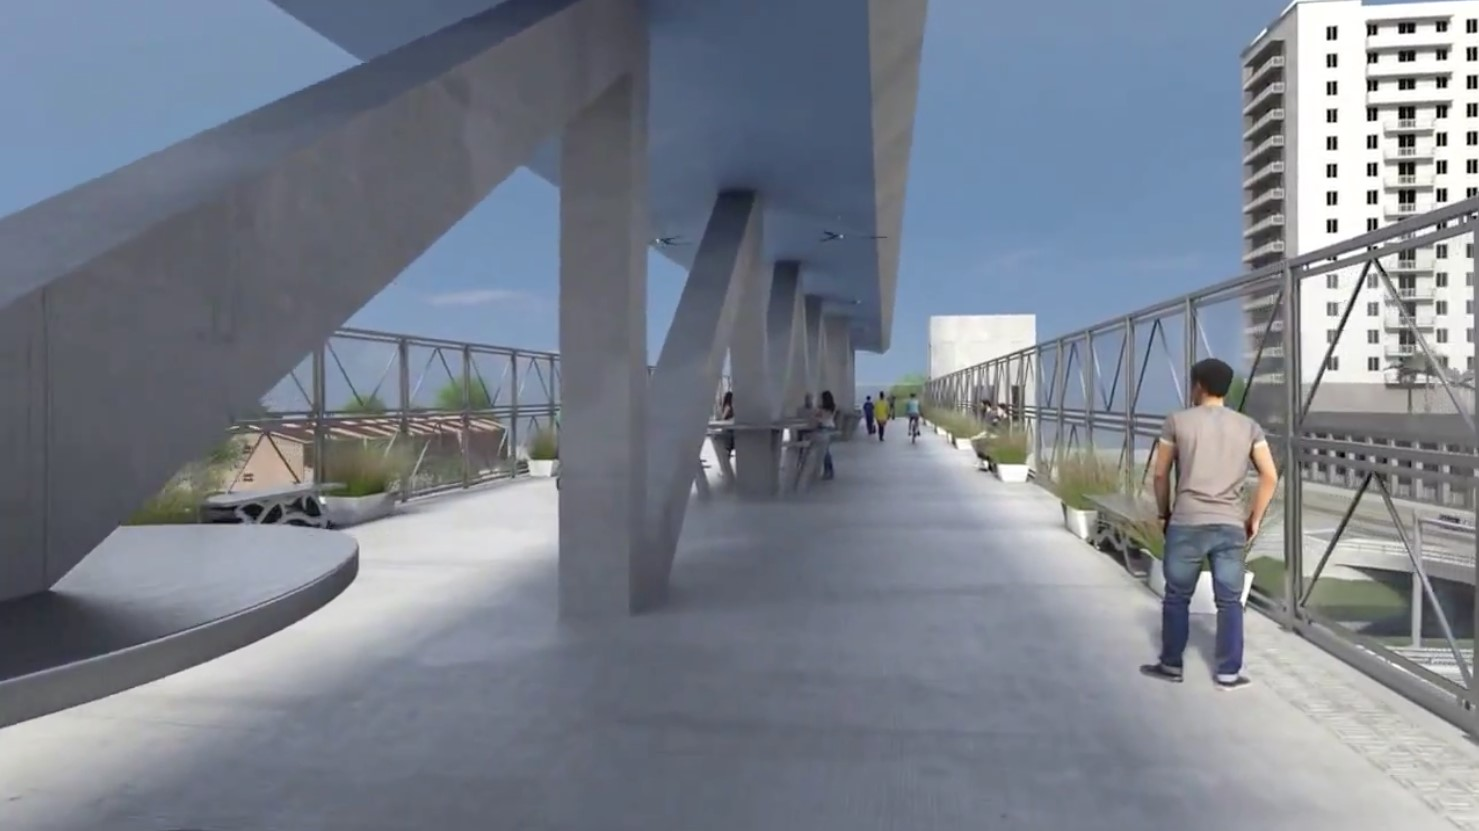 Pedestrian bridge rendering 2.5.16 2